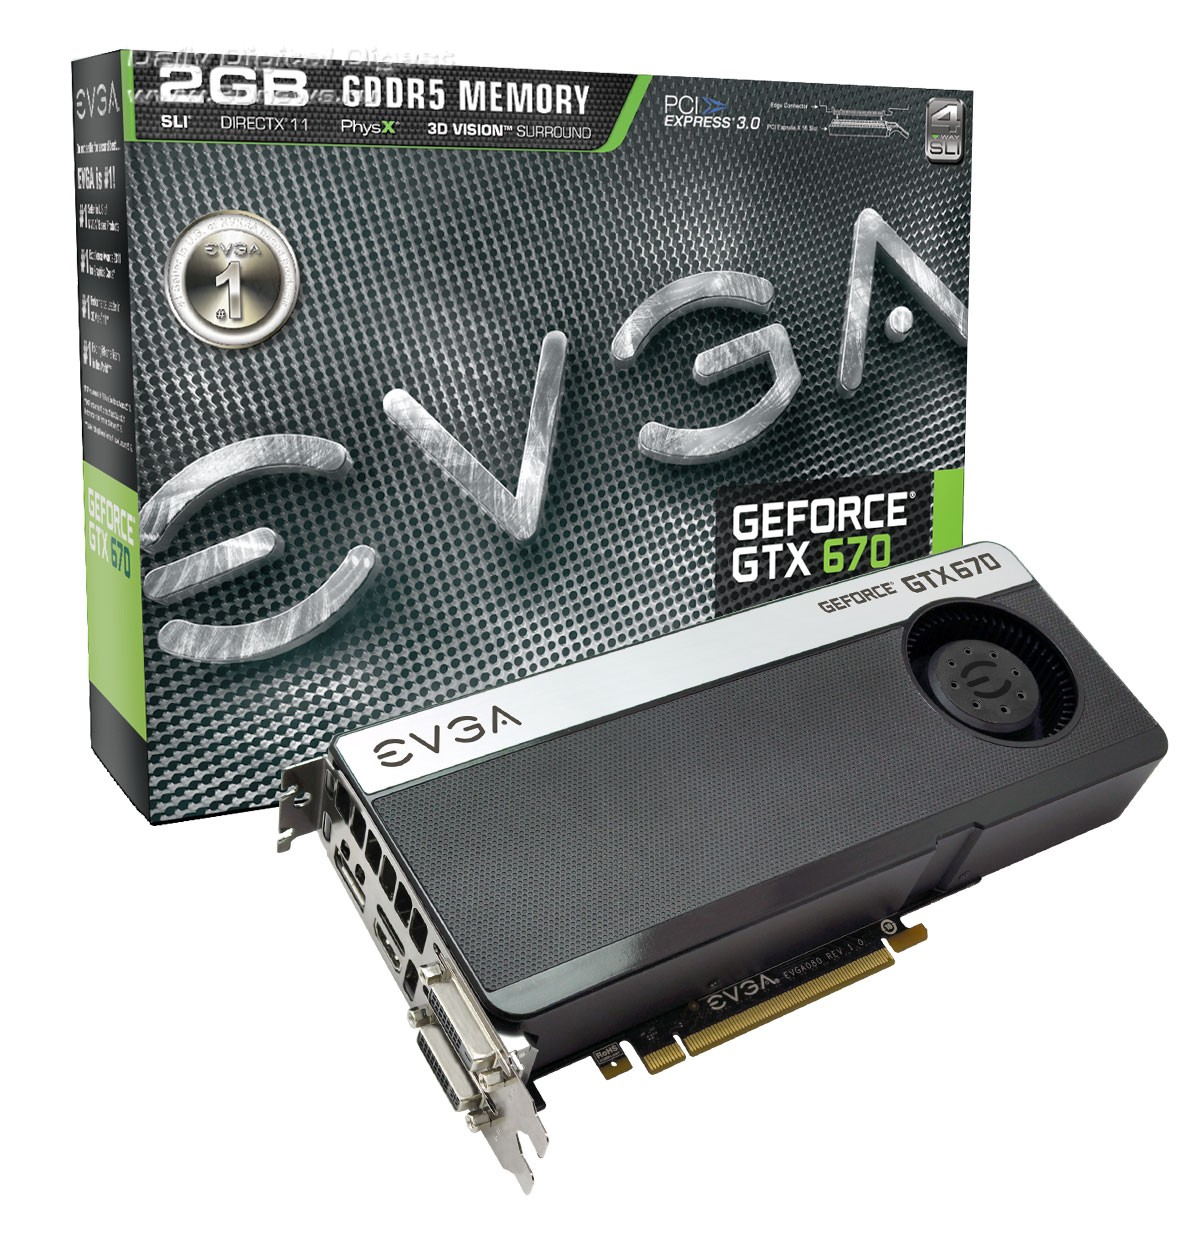 NVIDIA Launches the GeForce GTX 670